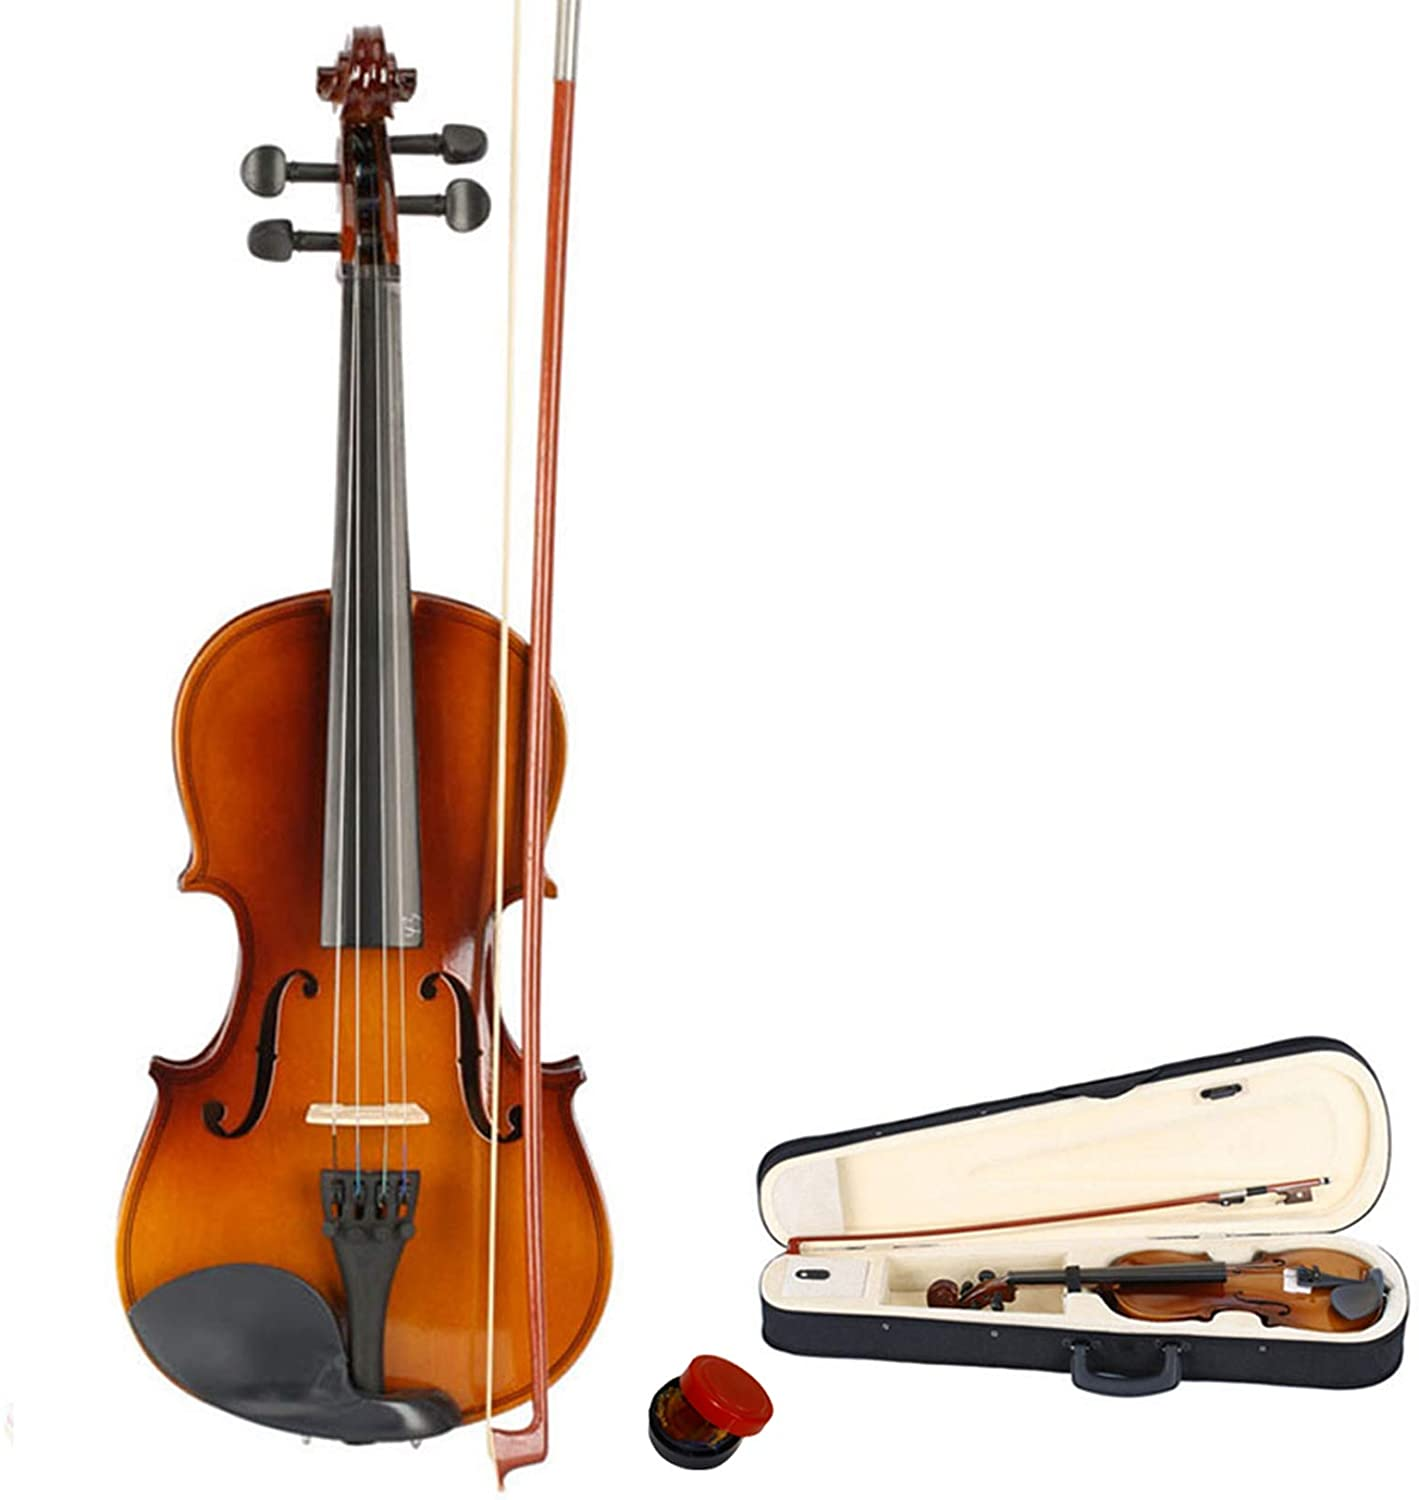 New 3/4 Acoustic Violin Case Bow Rosin Natural - Violin Set for Kids Beginners Students Adults